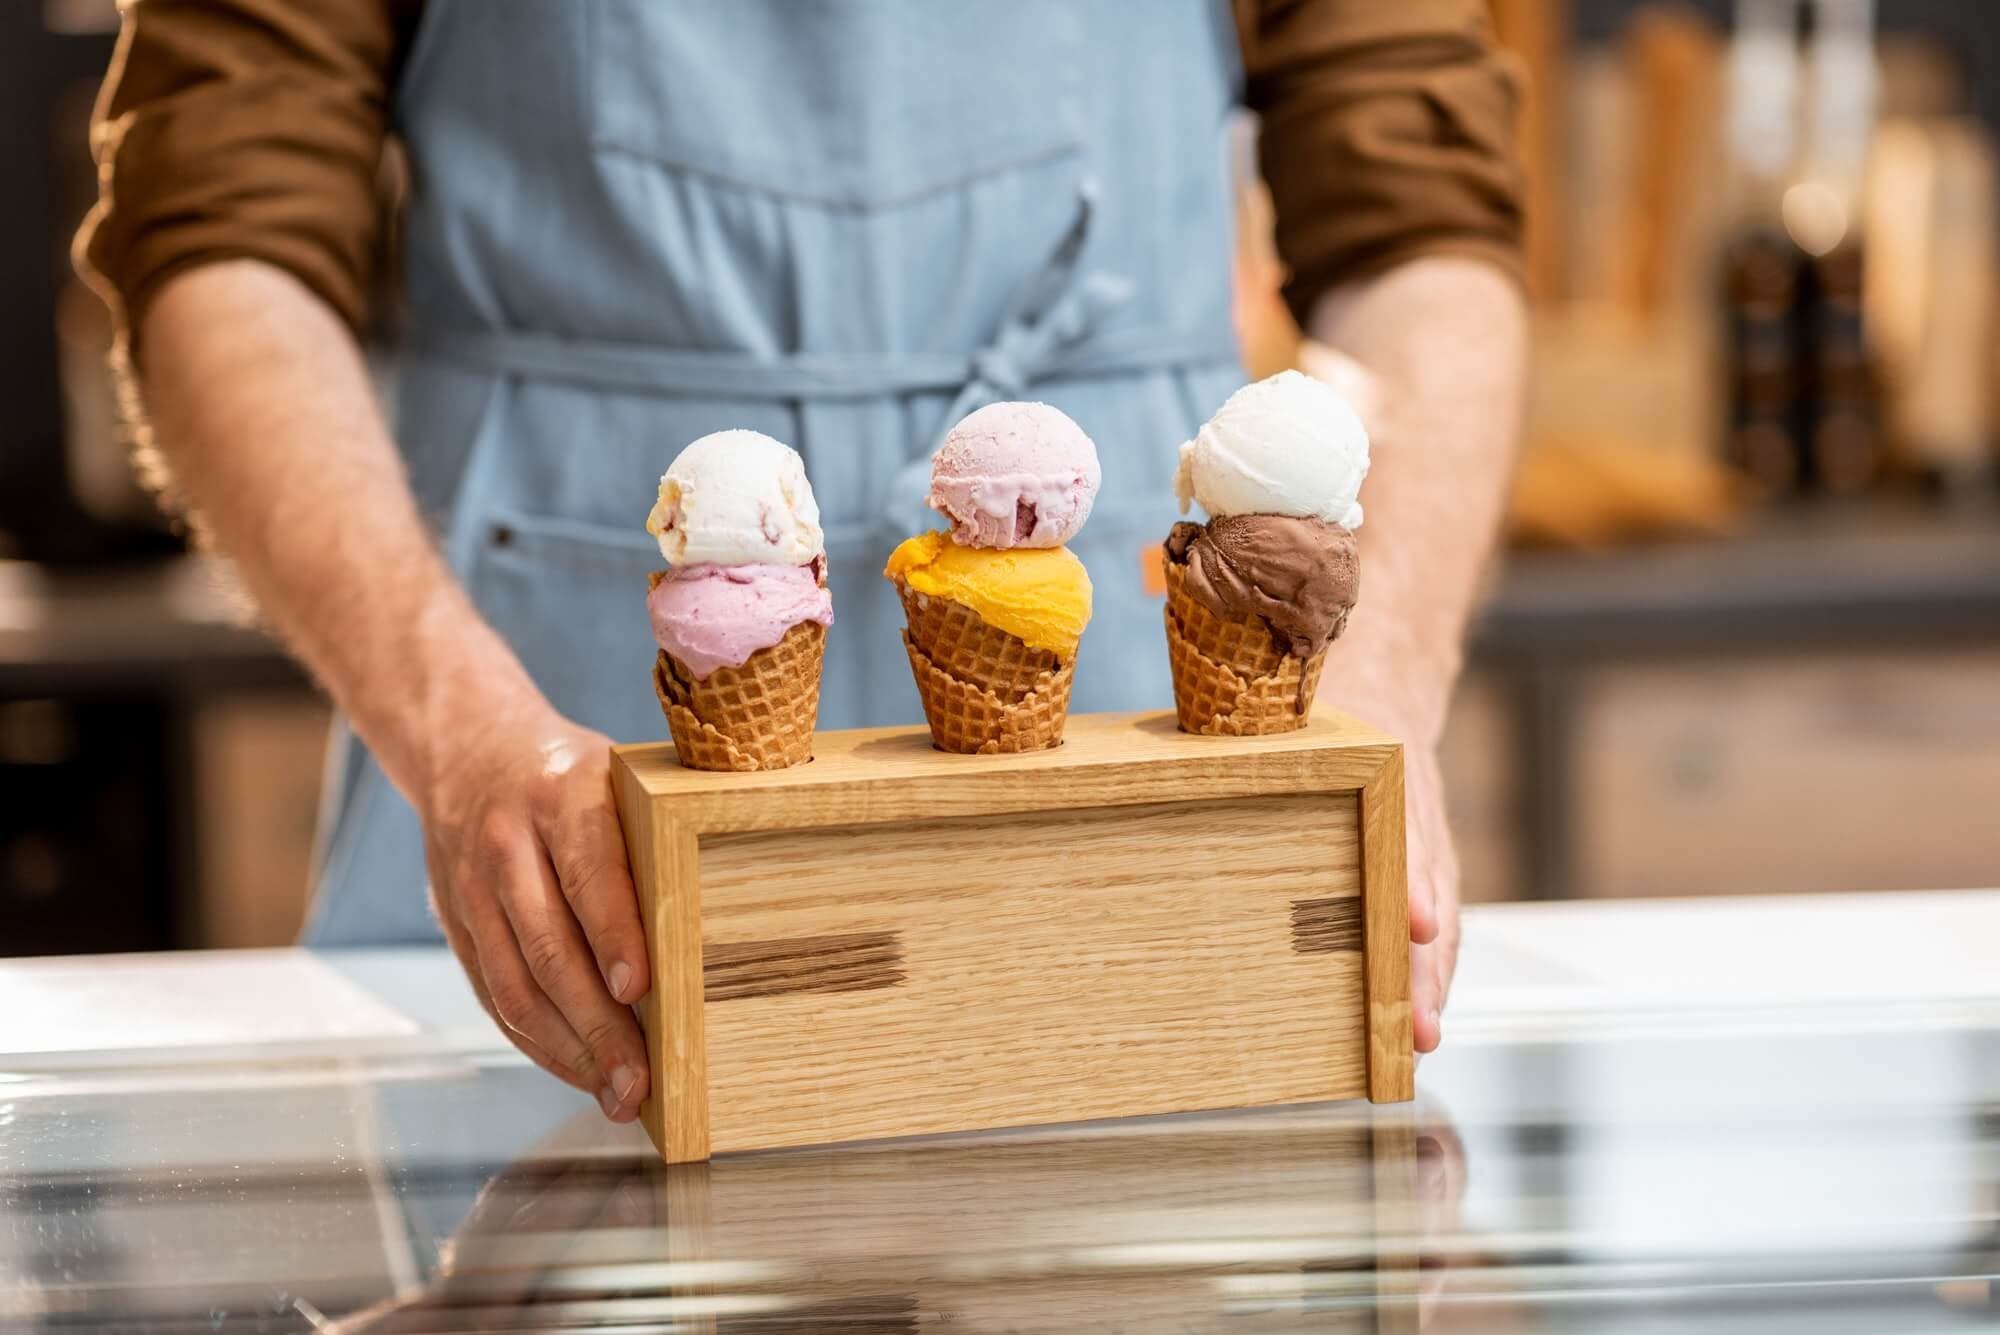 Seller with yummy ice creams in the shop